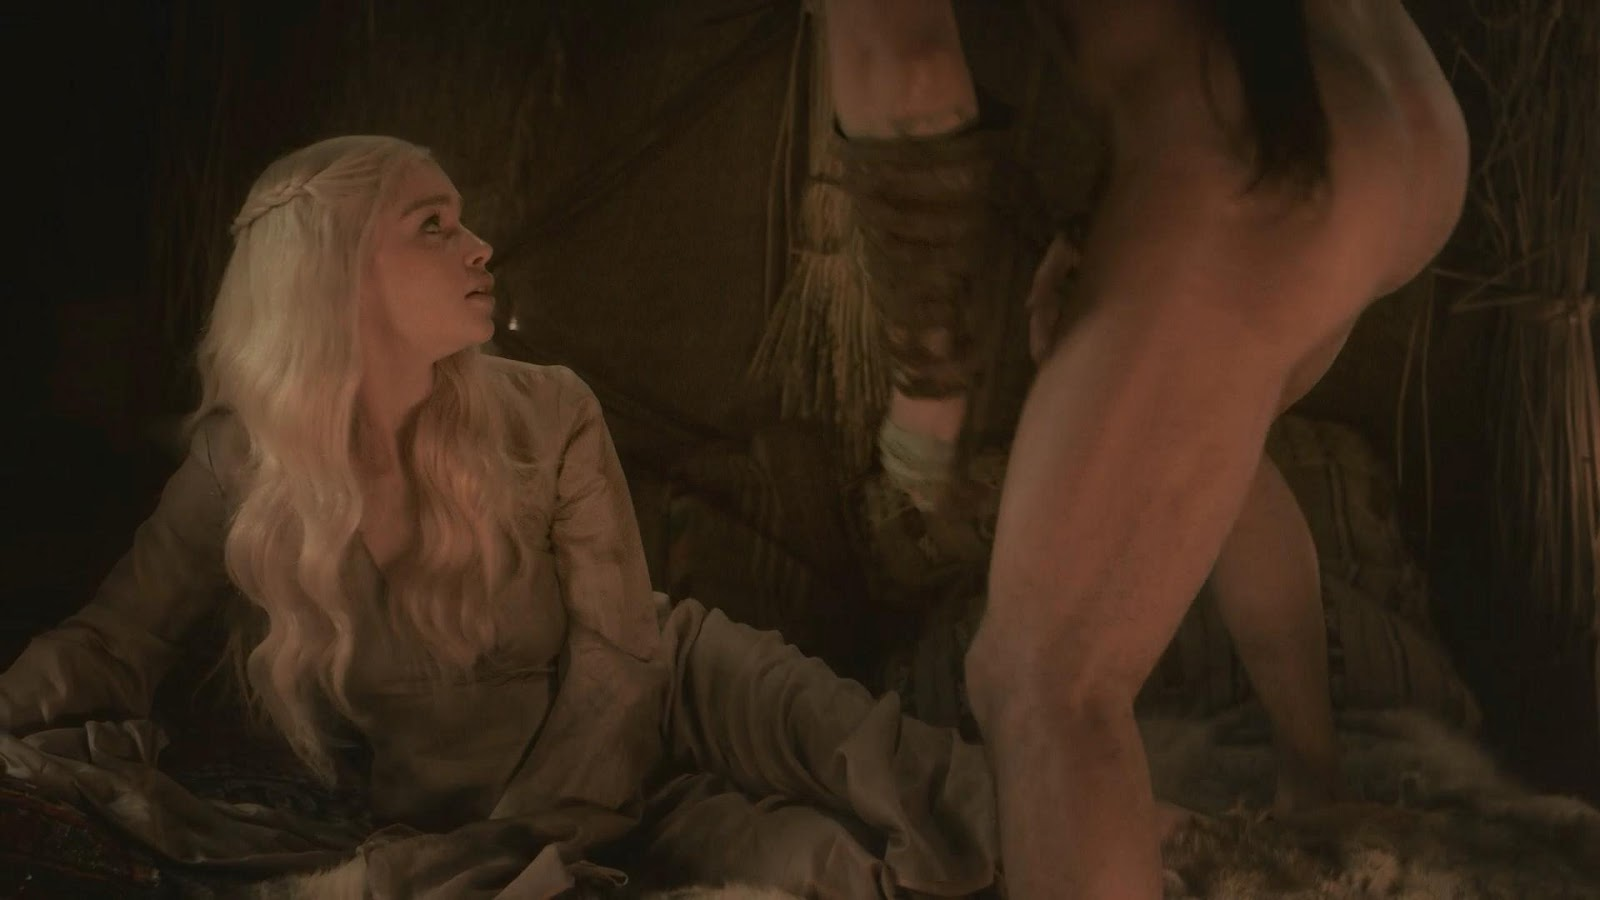 Jason momoa game of thrones nude absolutely